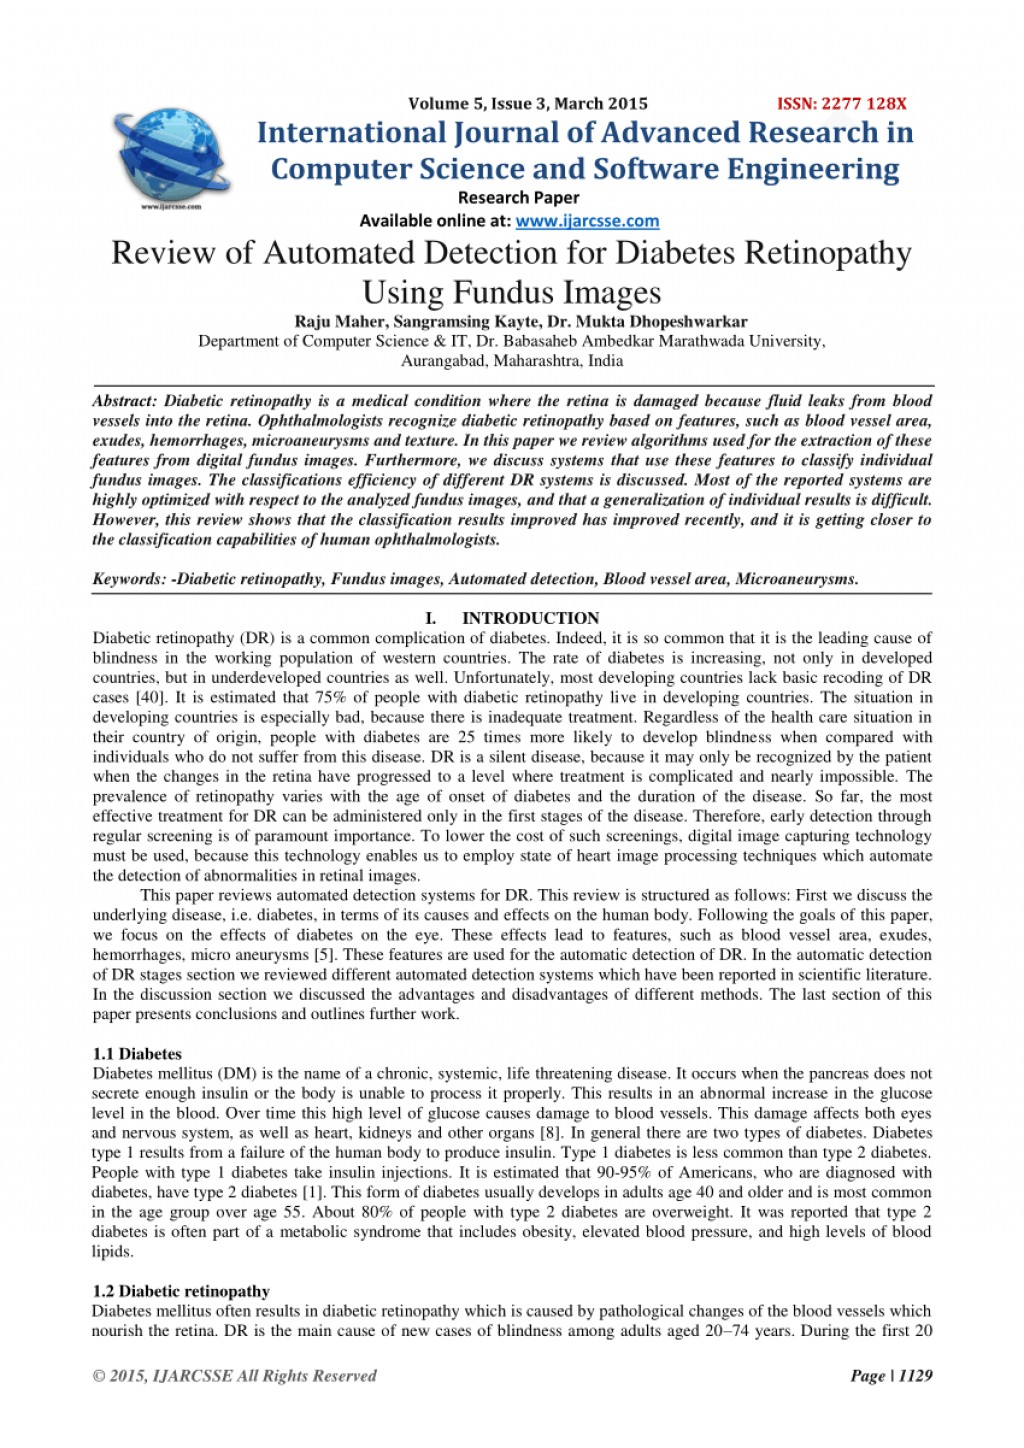 003 Research Paper Largepreview Diabetic Retinopathy Unusual Detection Large